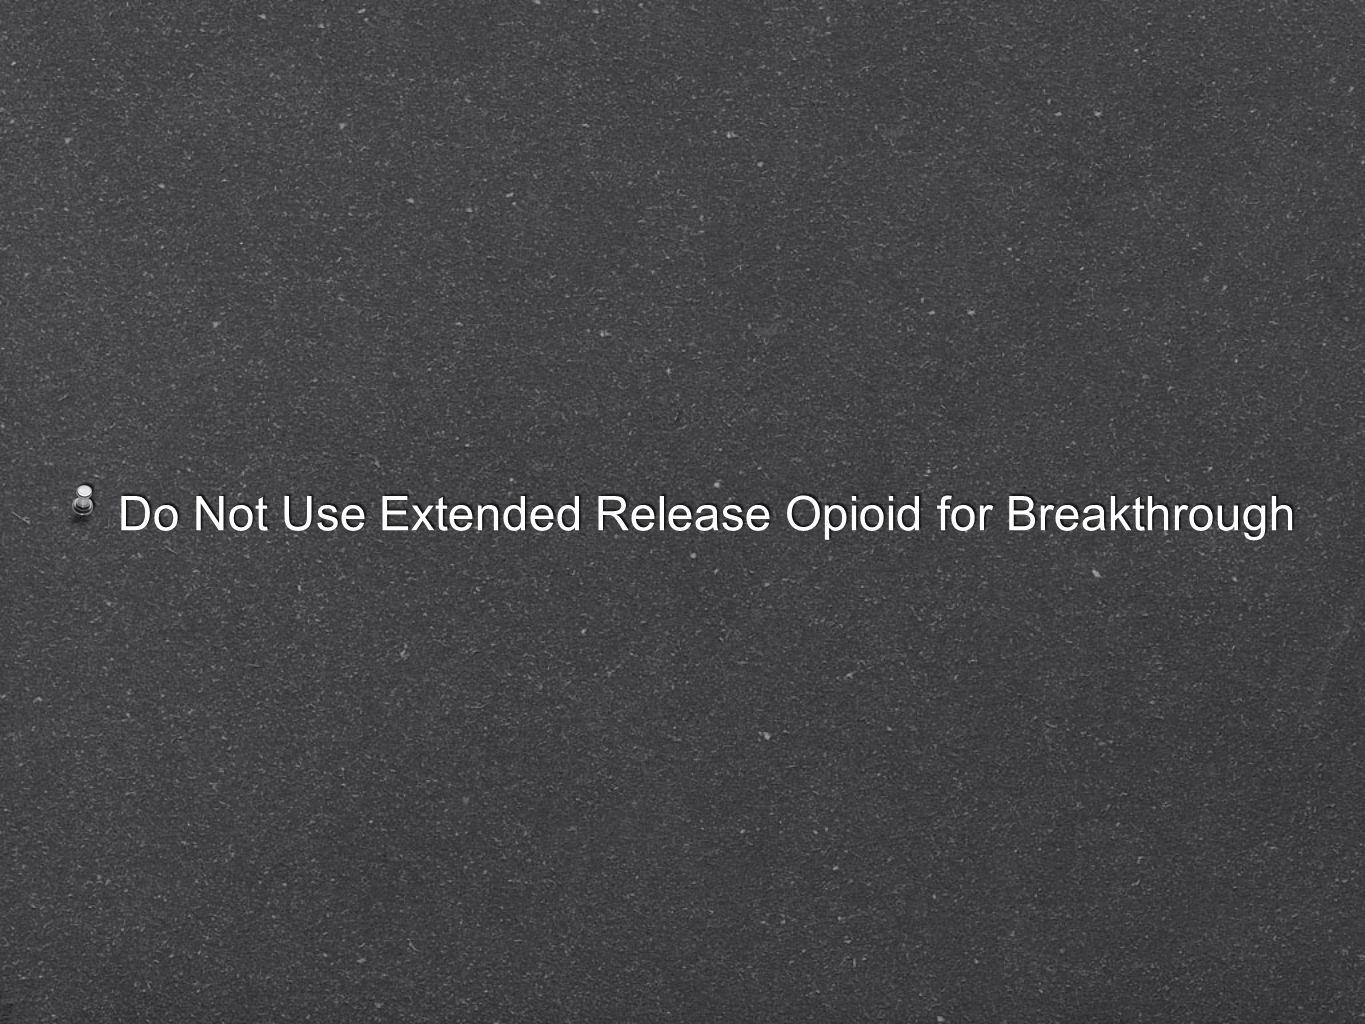 Do Not Use Extended Release Opioid for Breakthrough